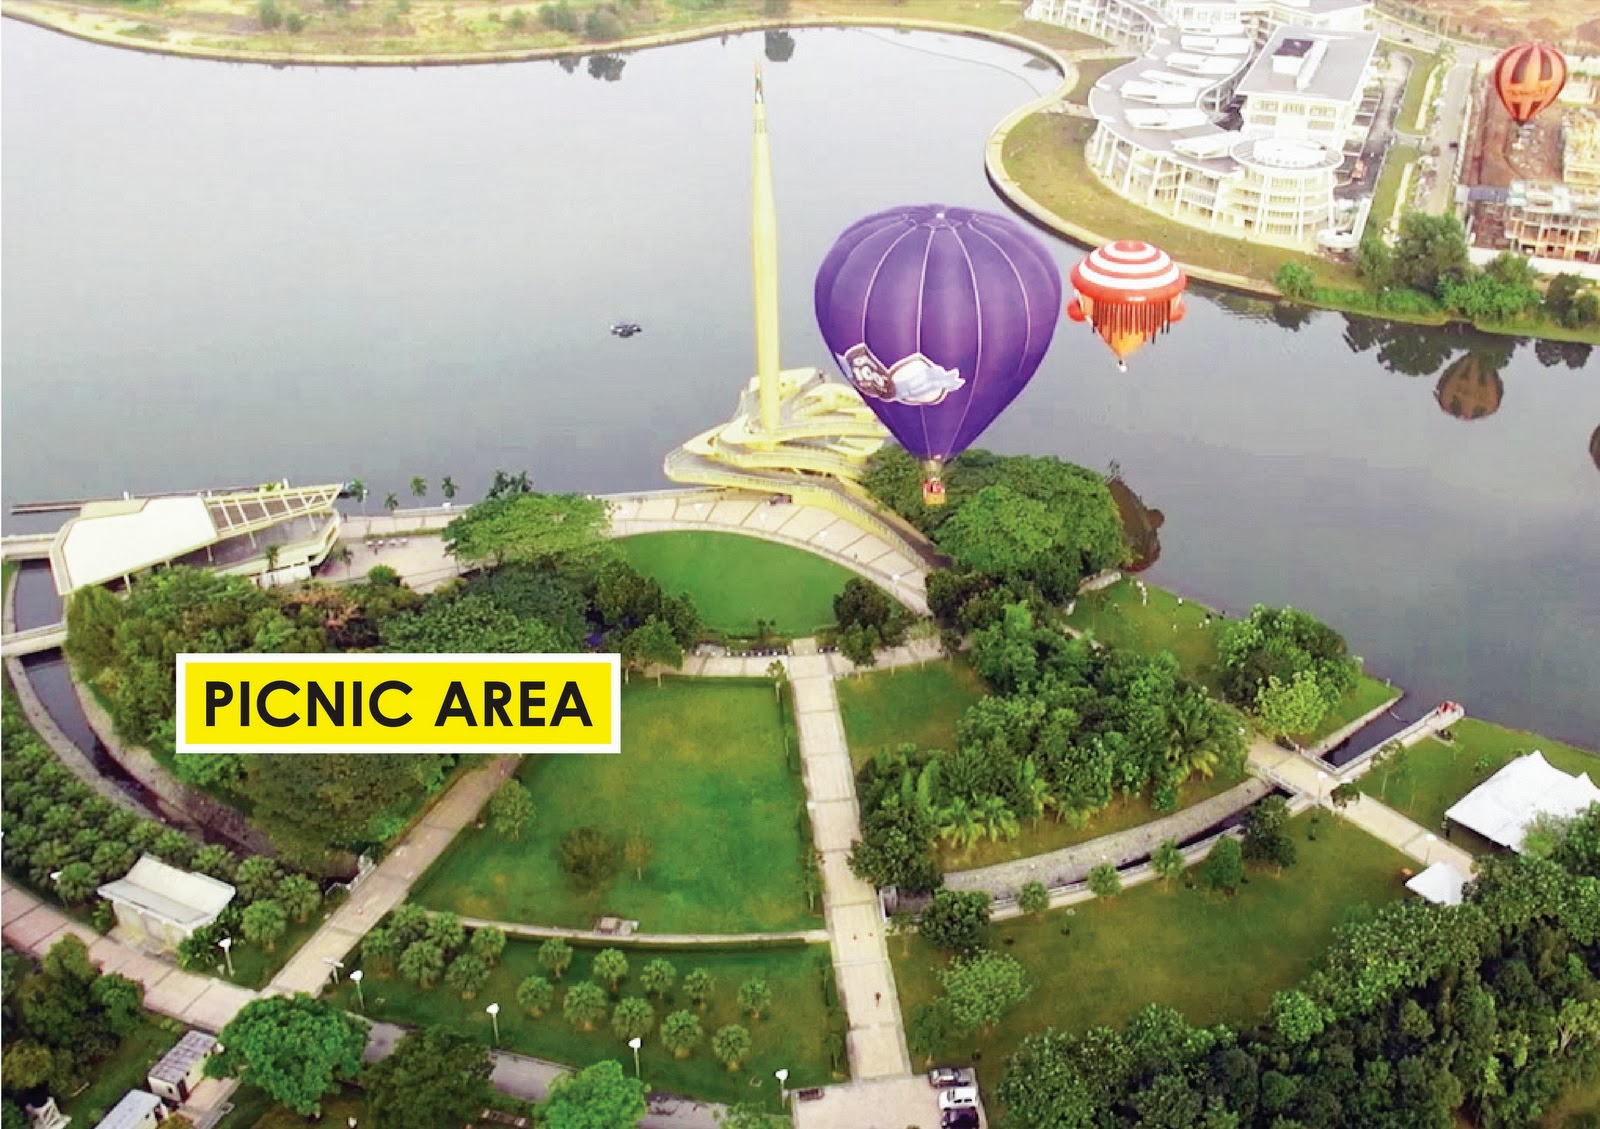 Picnic Area Layout of 6th Putrajaya International Hot Air Balloon Fiesta, 27-30 March